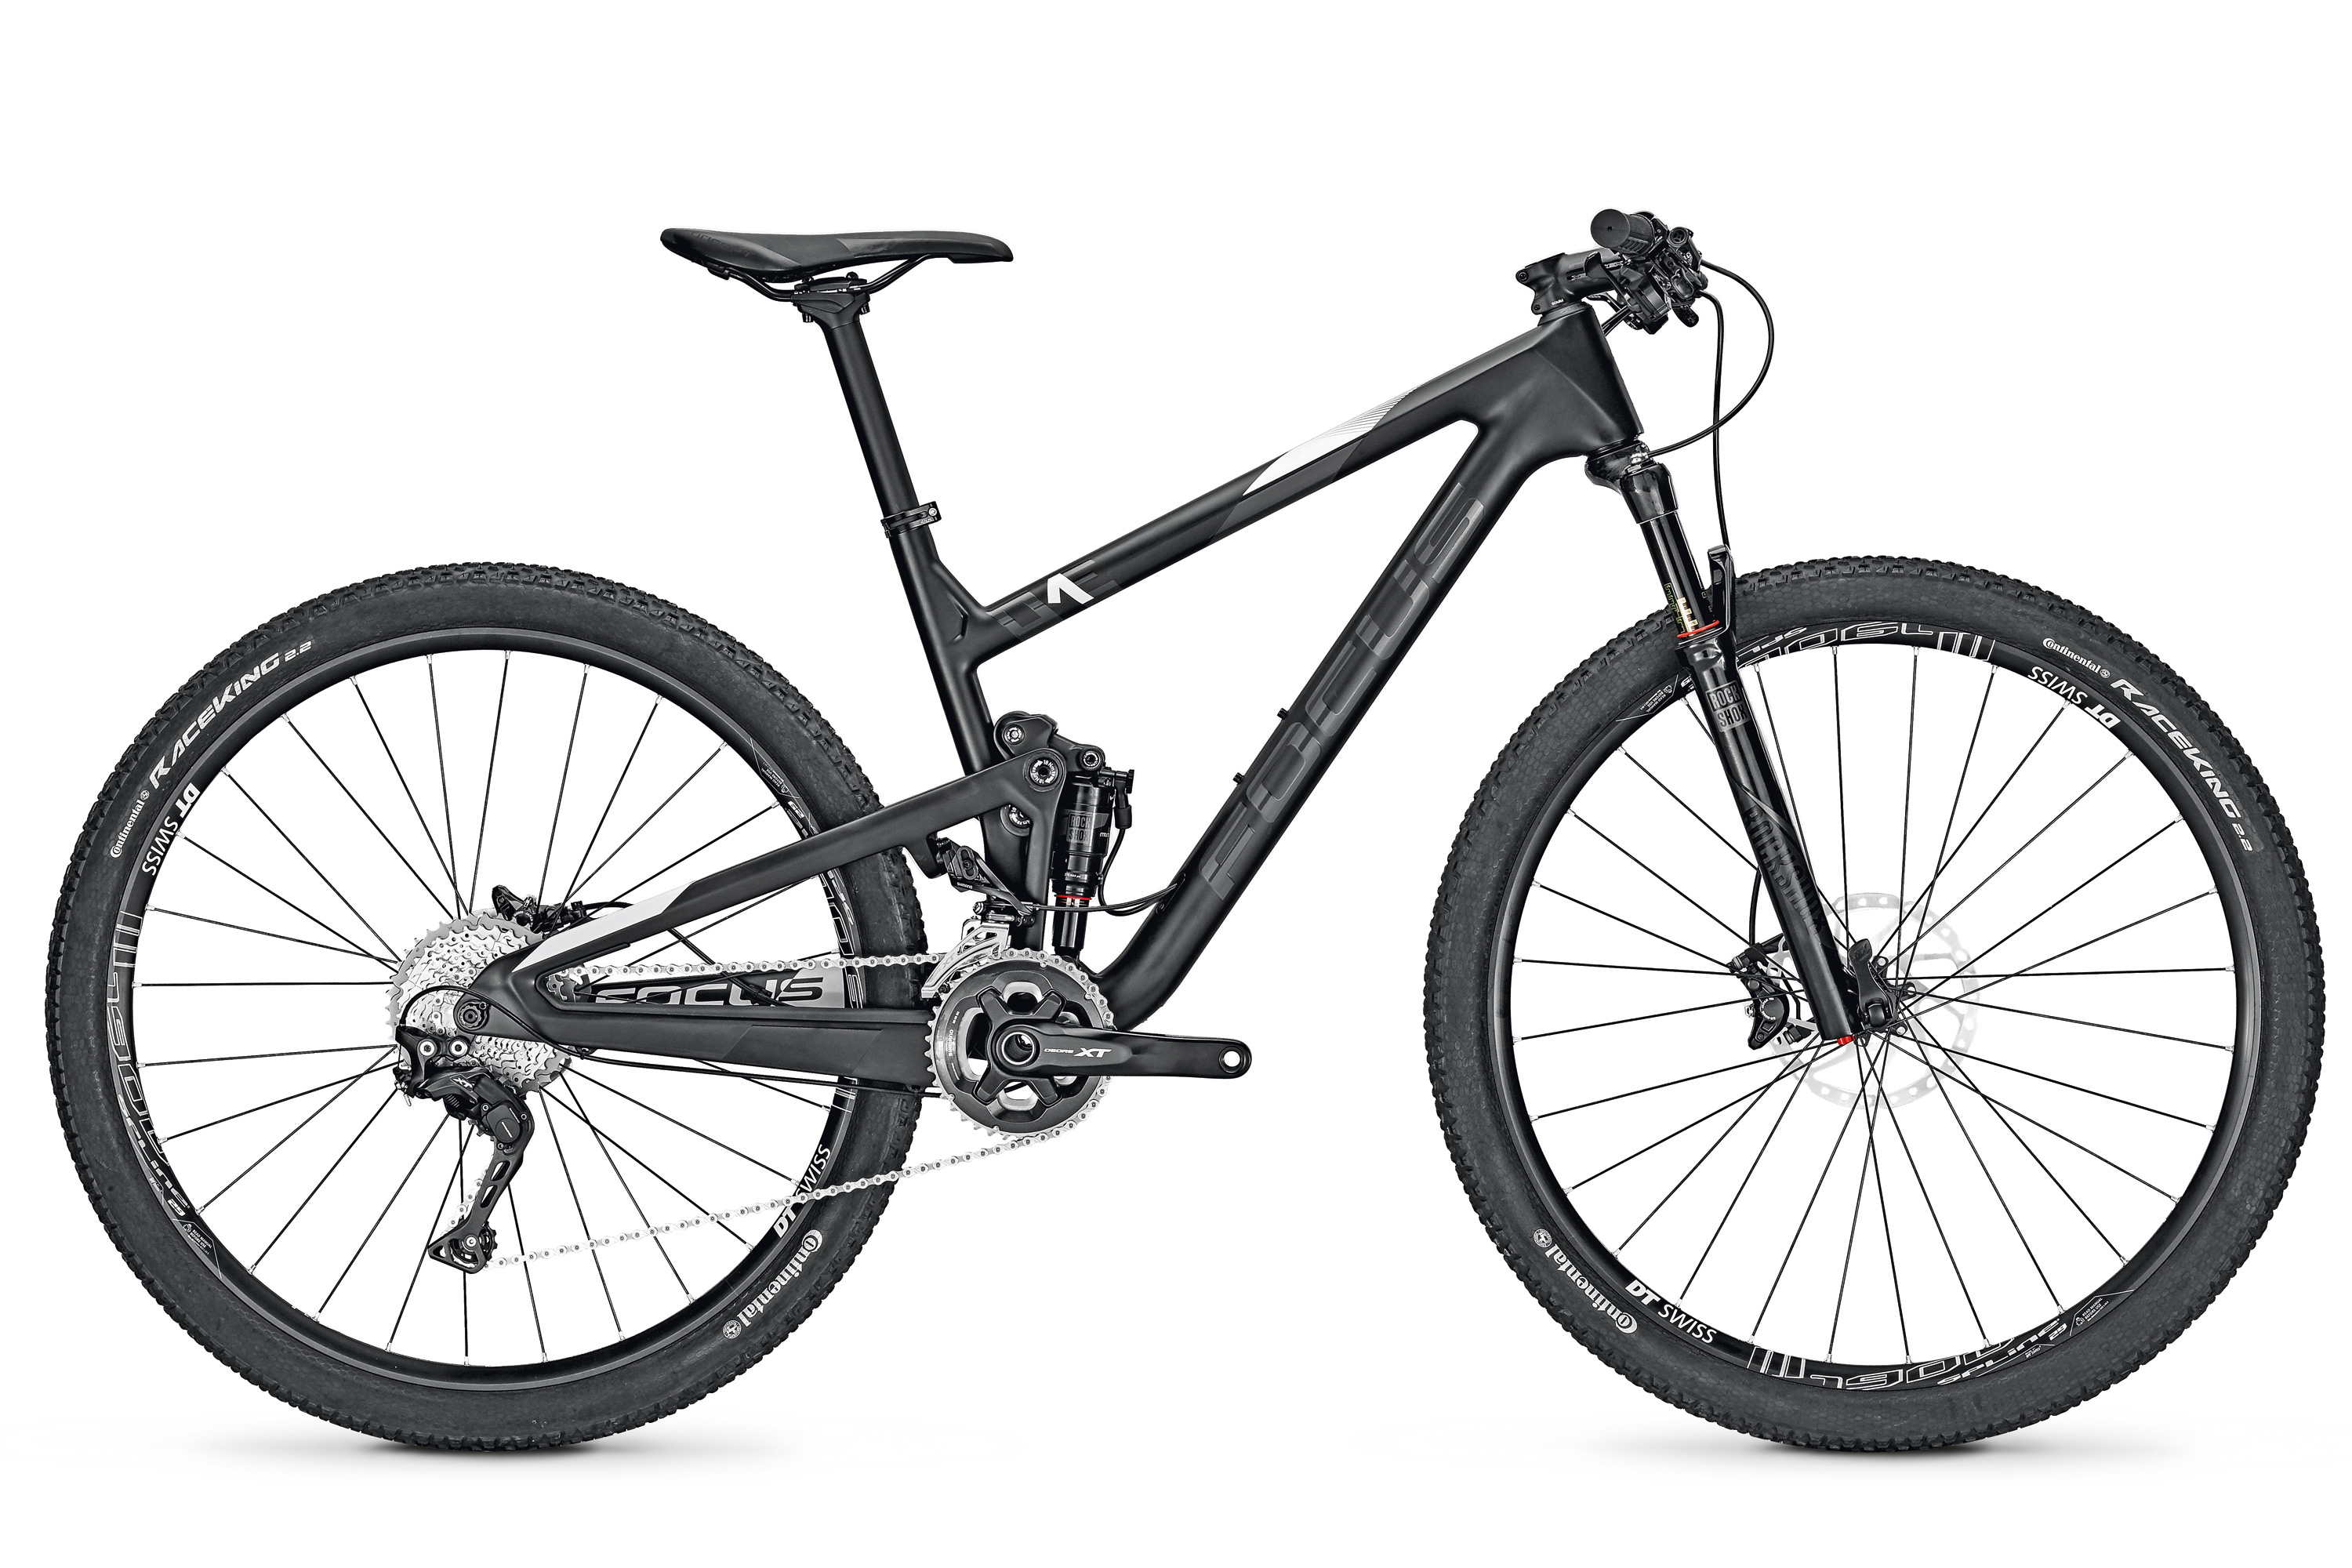 Scott Scale 770 2015 Review also 489521 2003 Mitsubishi Lancer T Fluid Pan Torque Specs likewise Eddy Merckx 2013 E Series as well Cannondale Launches New And Improved Scalpel Xc Race Bike moreover Harley Davidson Engine Timeline Big Twins. on evo drivetrain